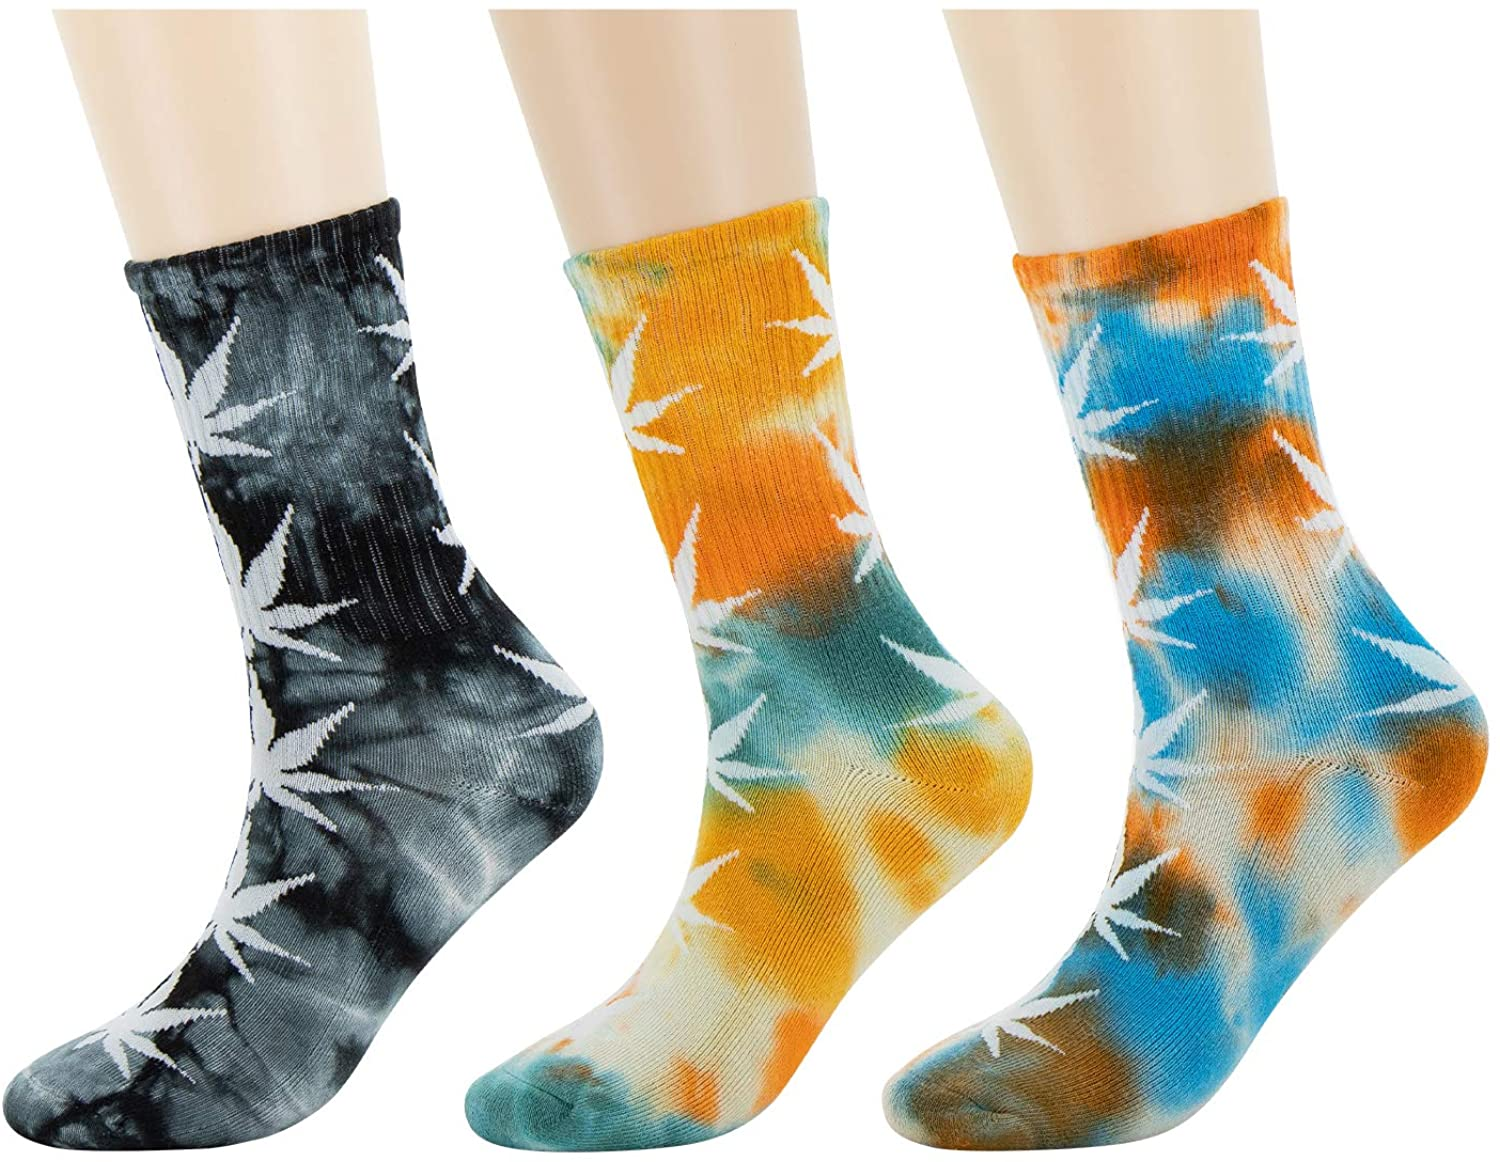 Dowerme Tie Dye Casual Socks for Women Crew Cotton Socks Funny Printed Novelty Cozy Activities Soft Multicolor Womens Fashion